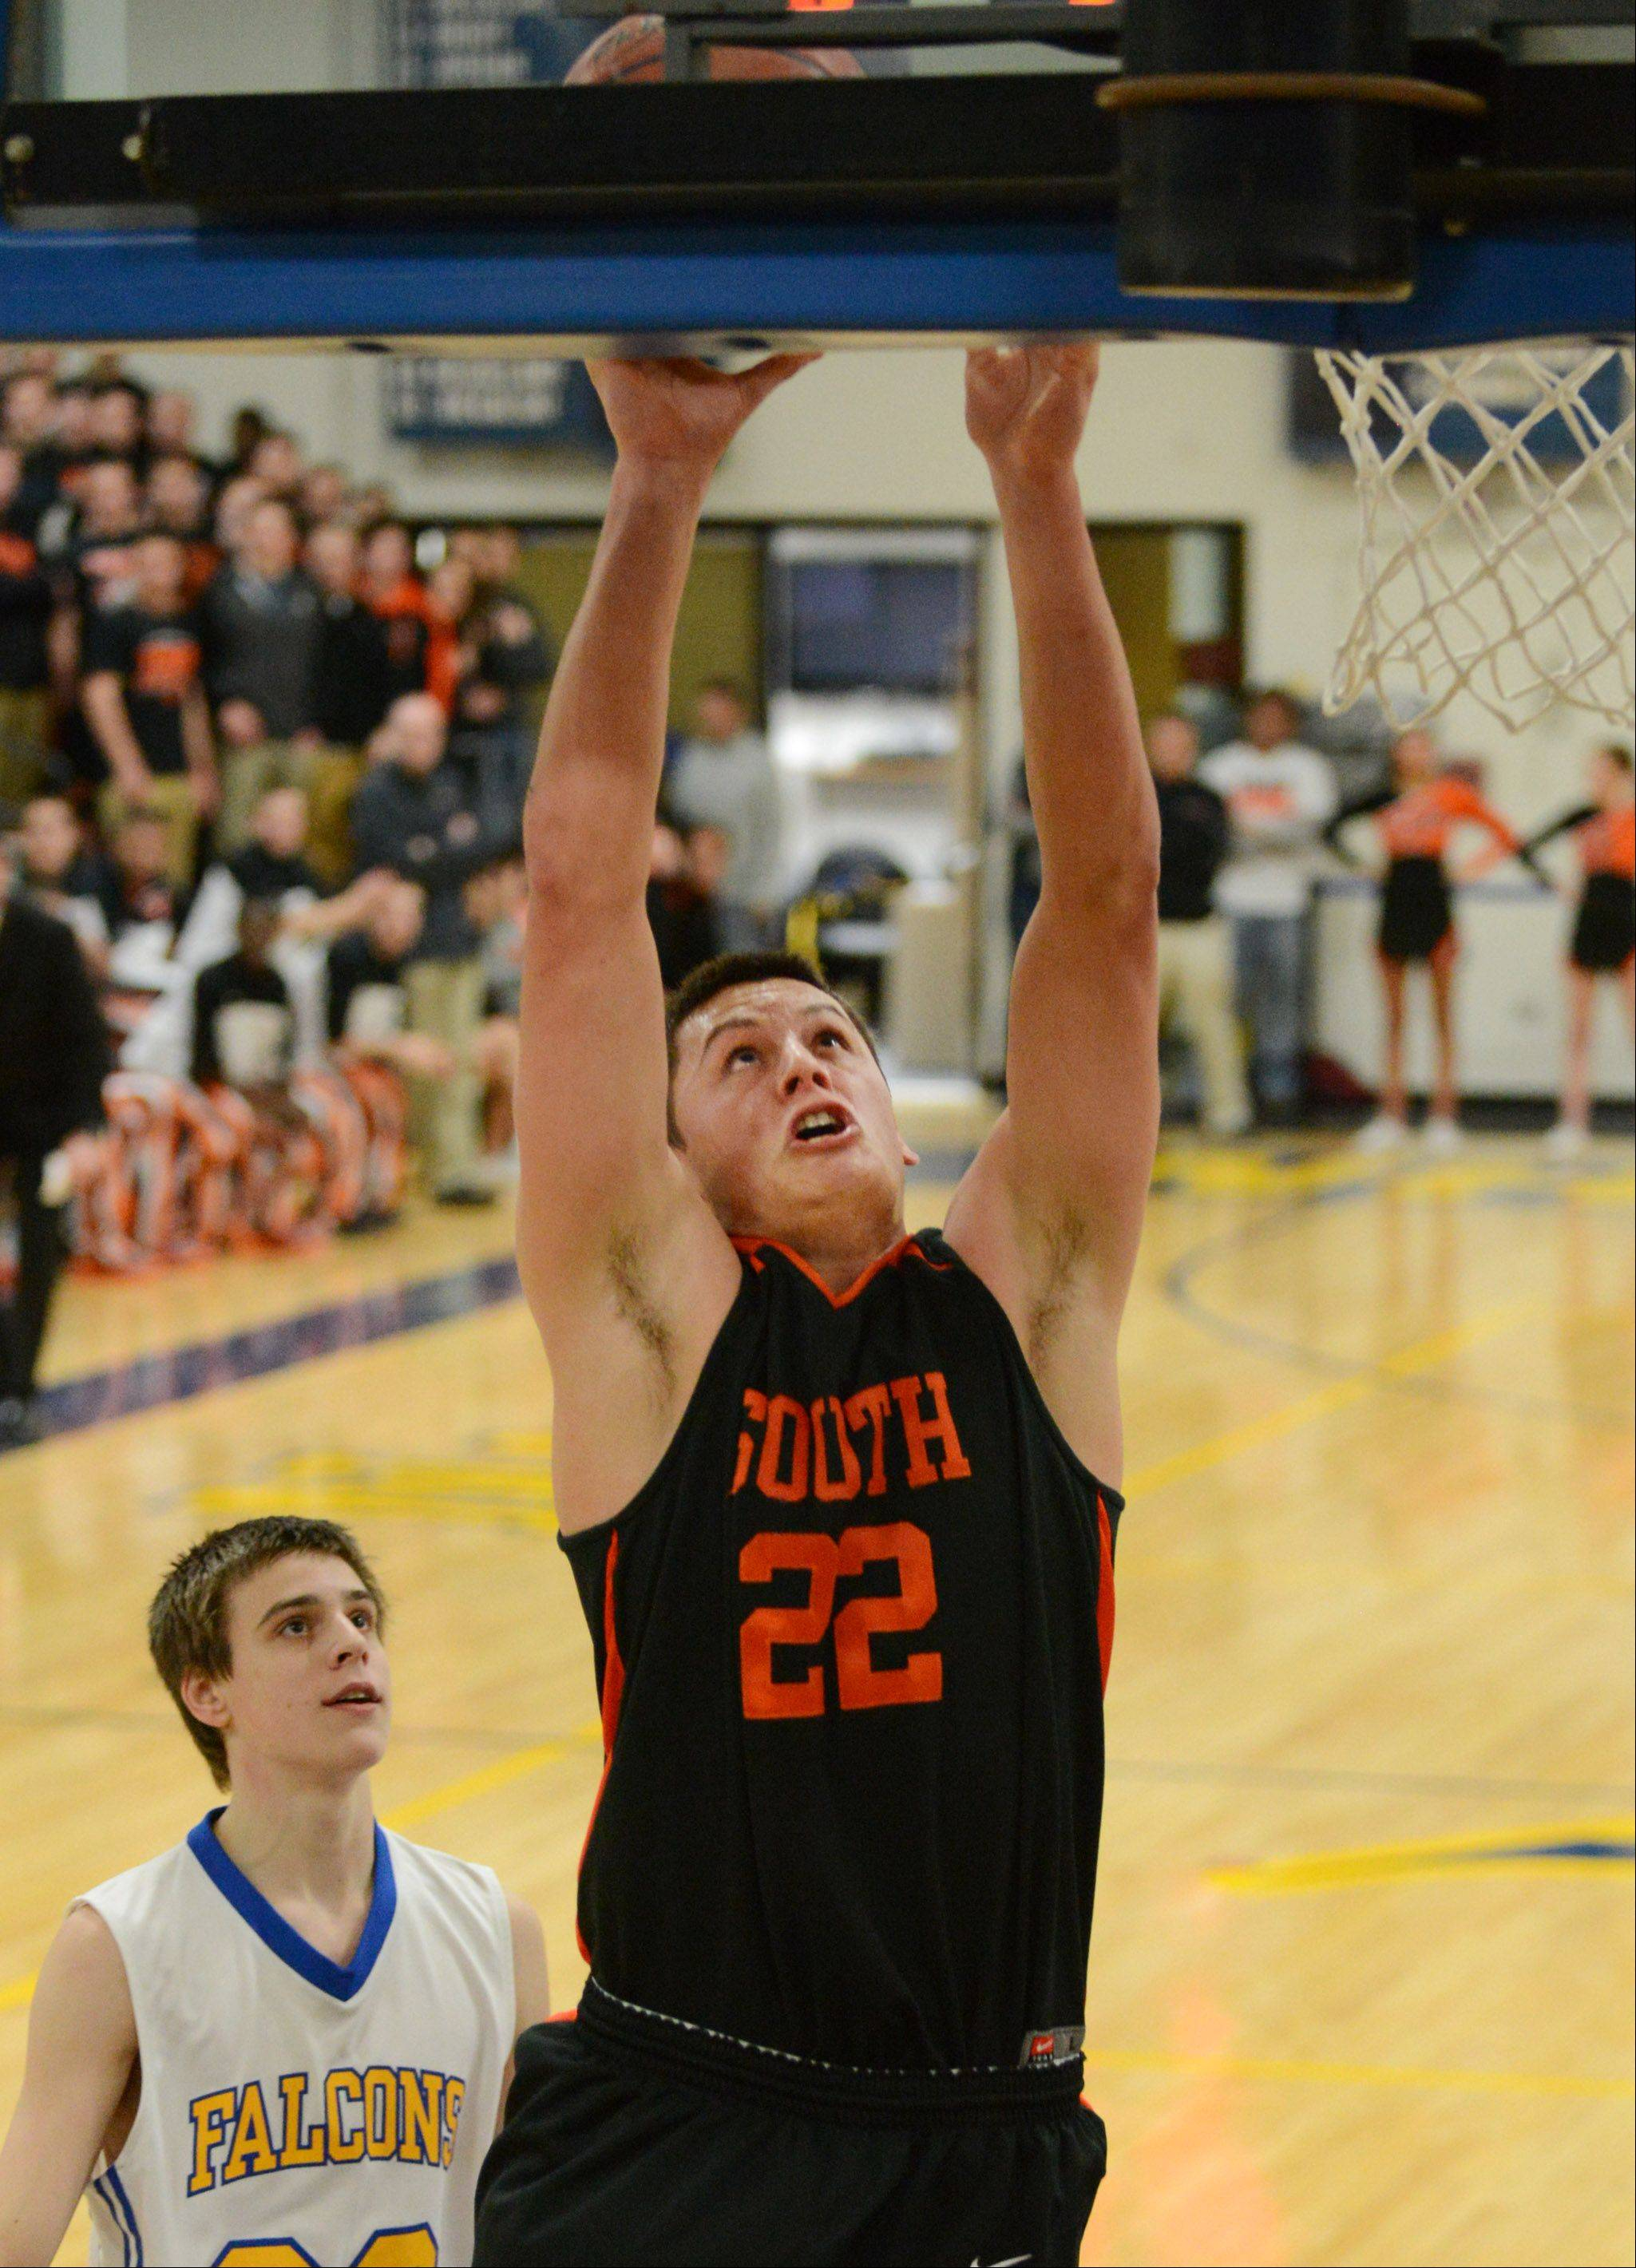 Wheaton Warrenville South's Aidan Hernandez scores on a breakaway layup.